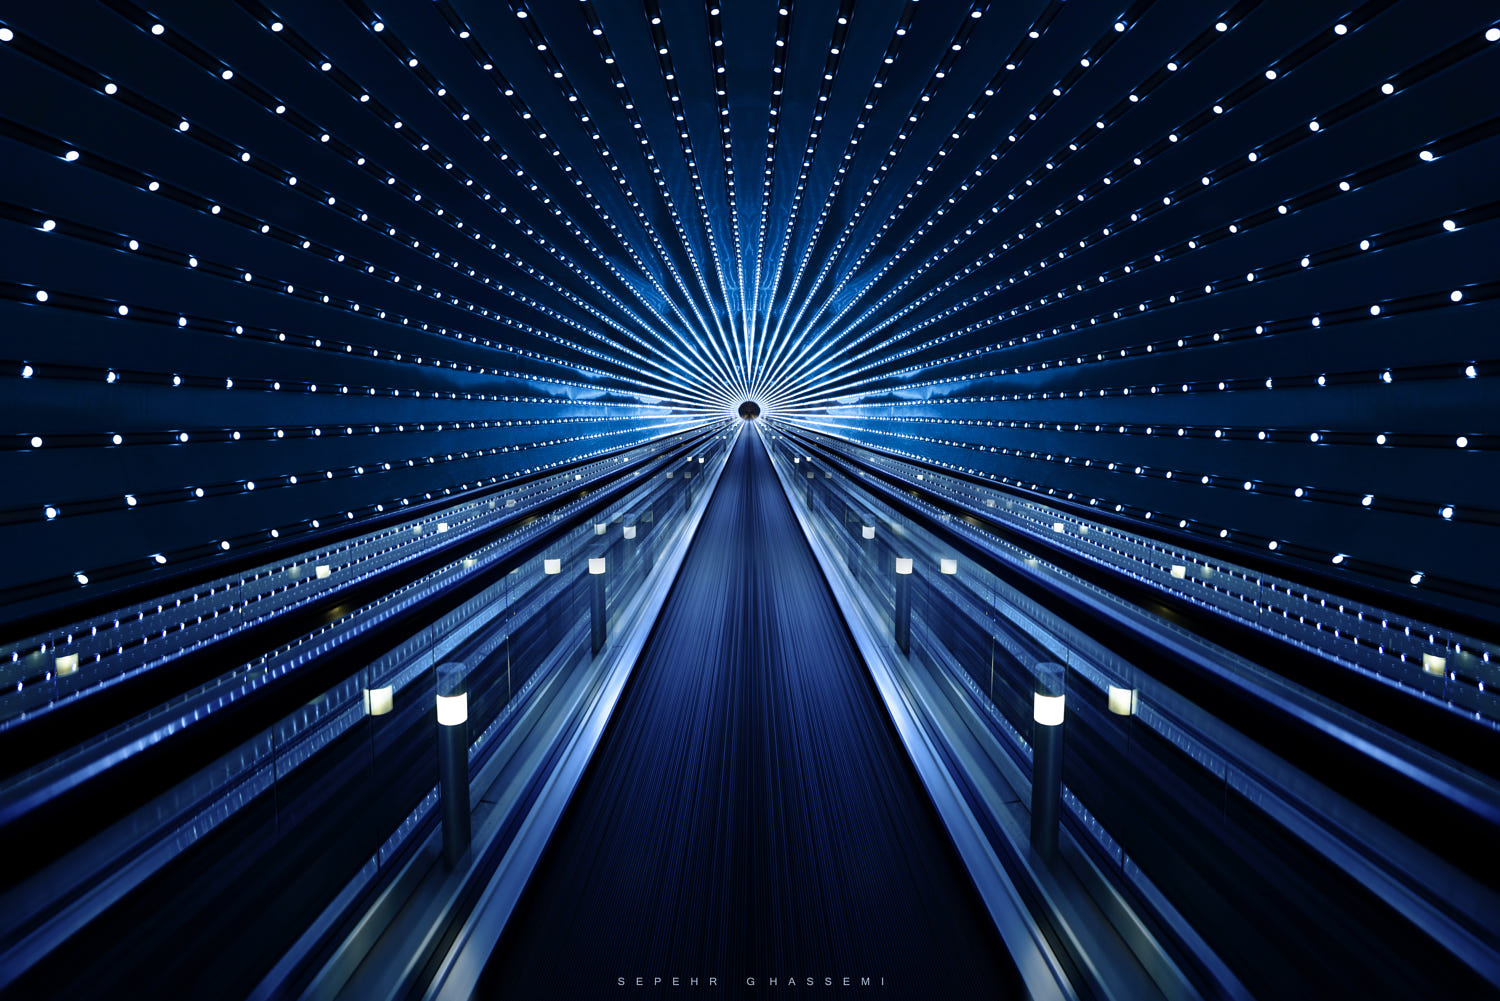 symmetry photography abstract space warp